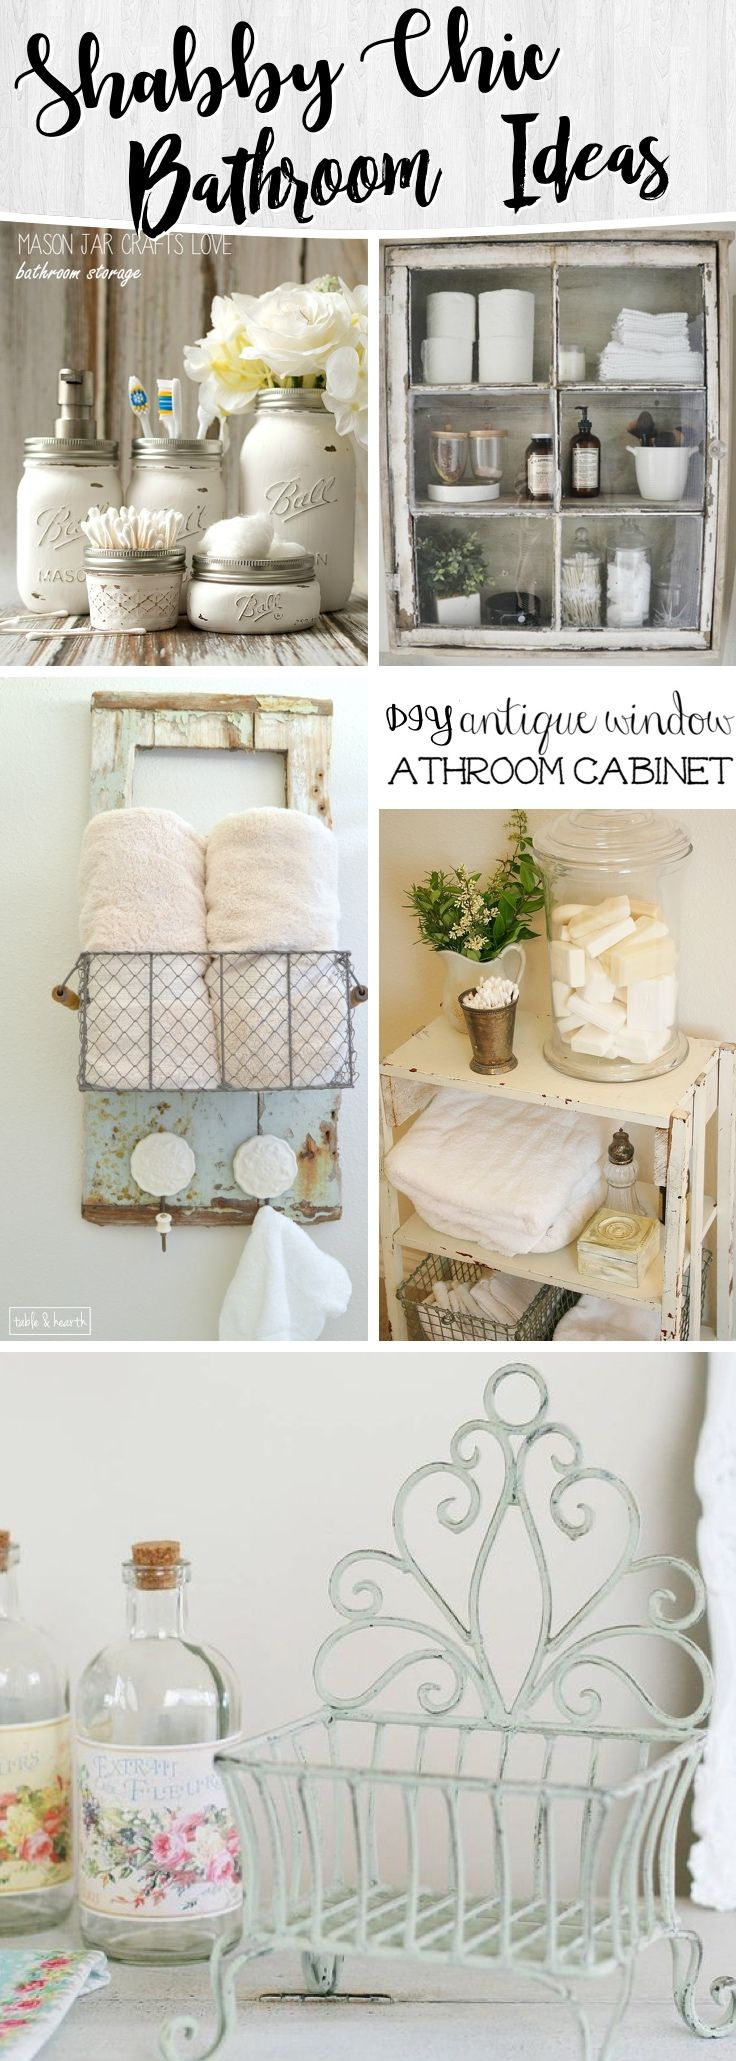 Beau 15 Shabby Chic Bathroom Ideas Transforming Your Space From Simple To Classic